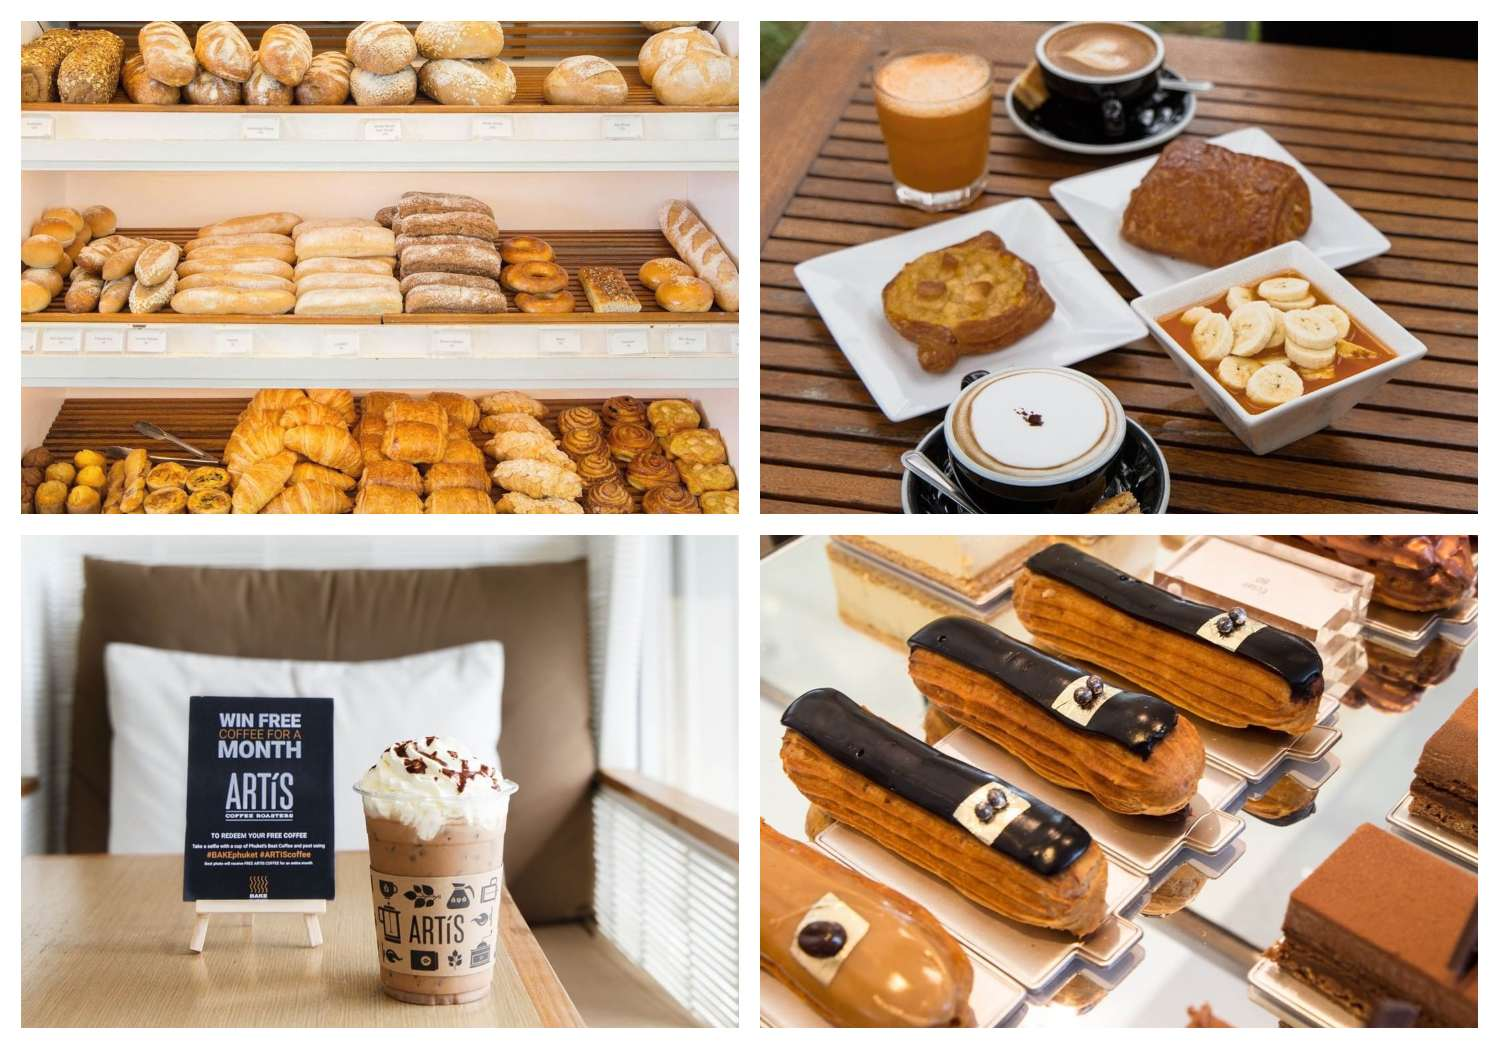 Collage of products that can be bought at BAKE Phuket in the Boat Avenue area near Bang Tao Beach